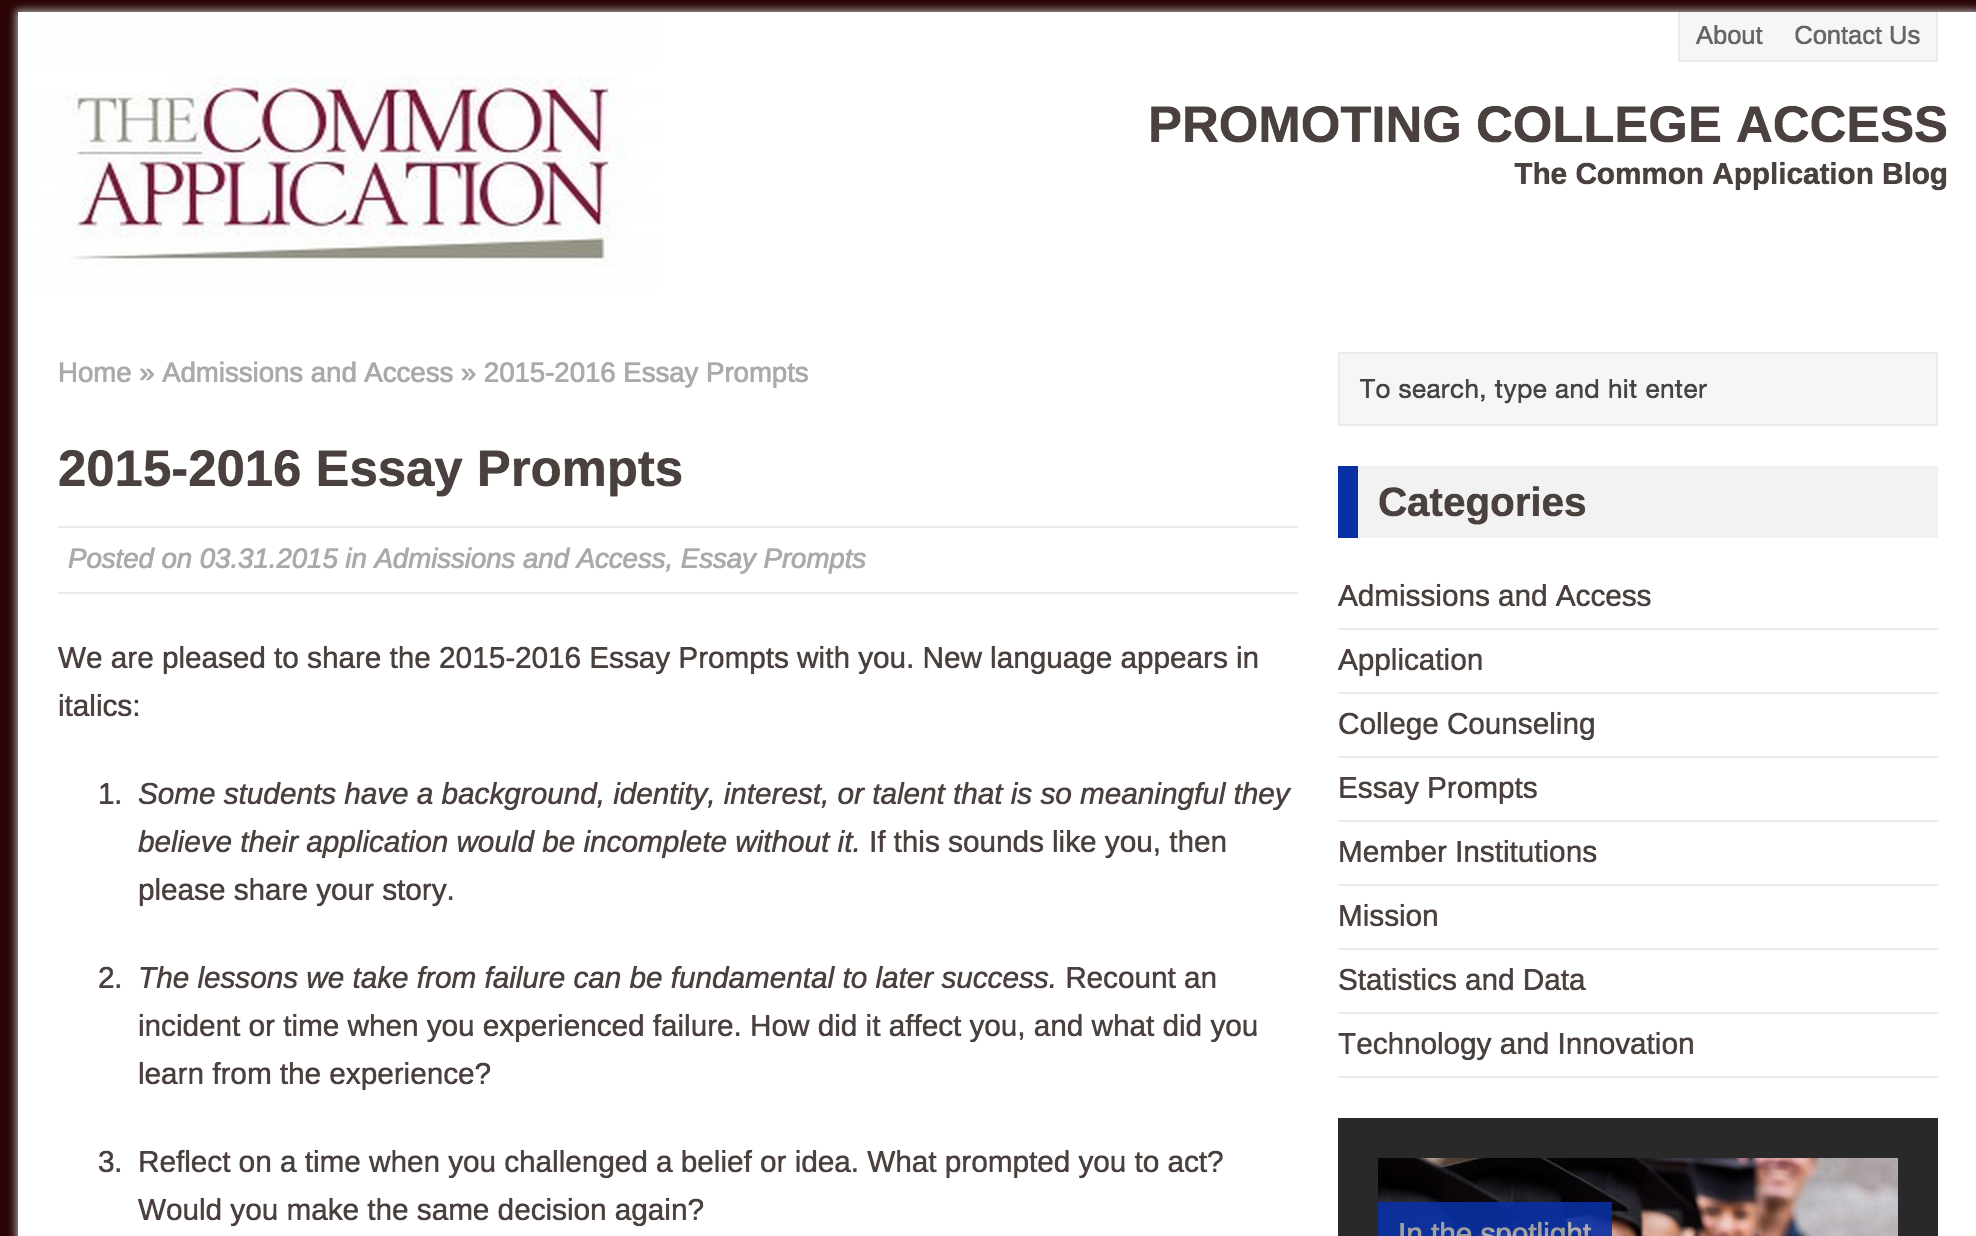 017 Essay Prompts For College Screen Shot At Pm Unique Writing Esl Students Argumentative Expository Full